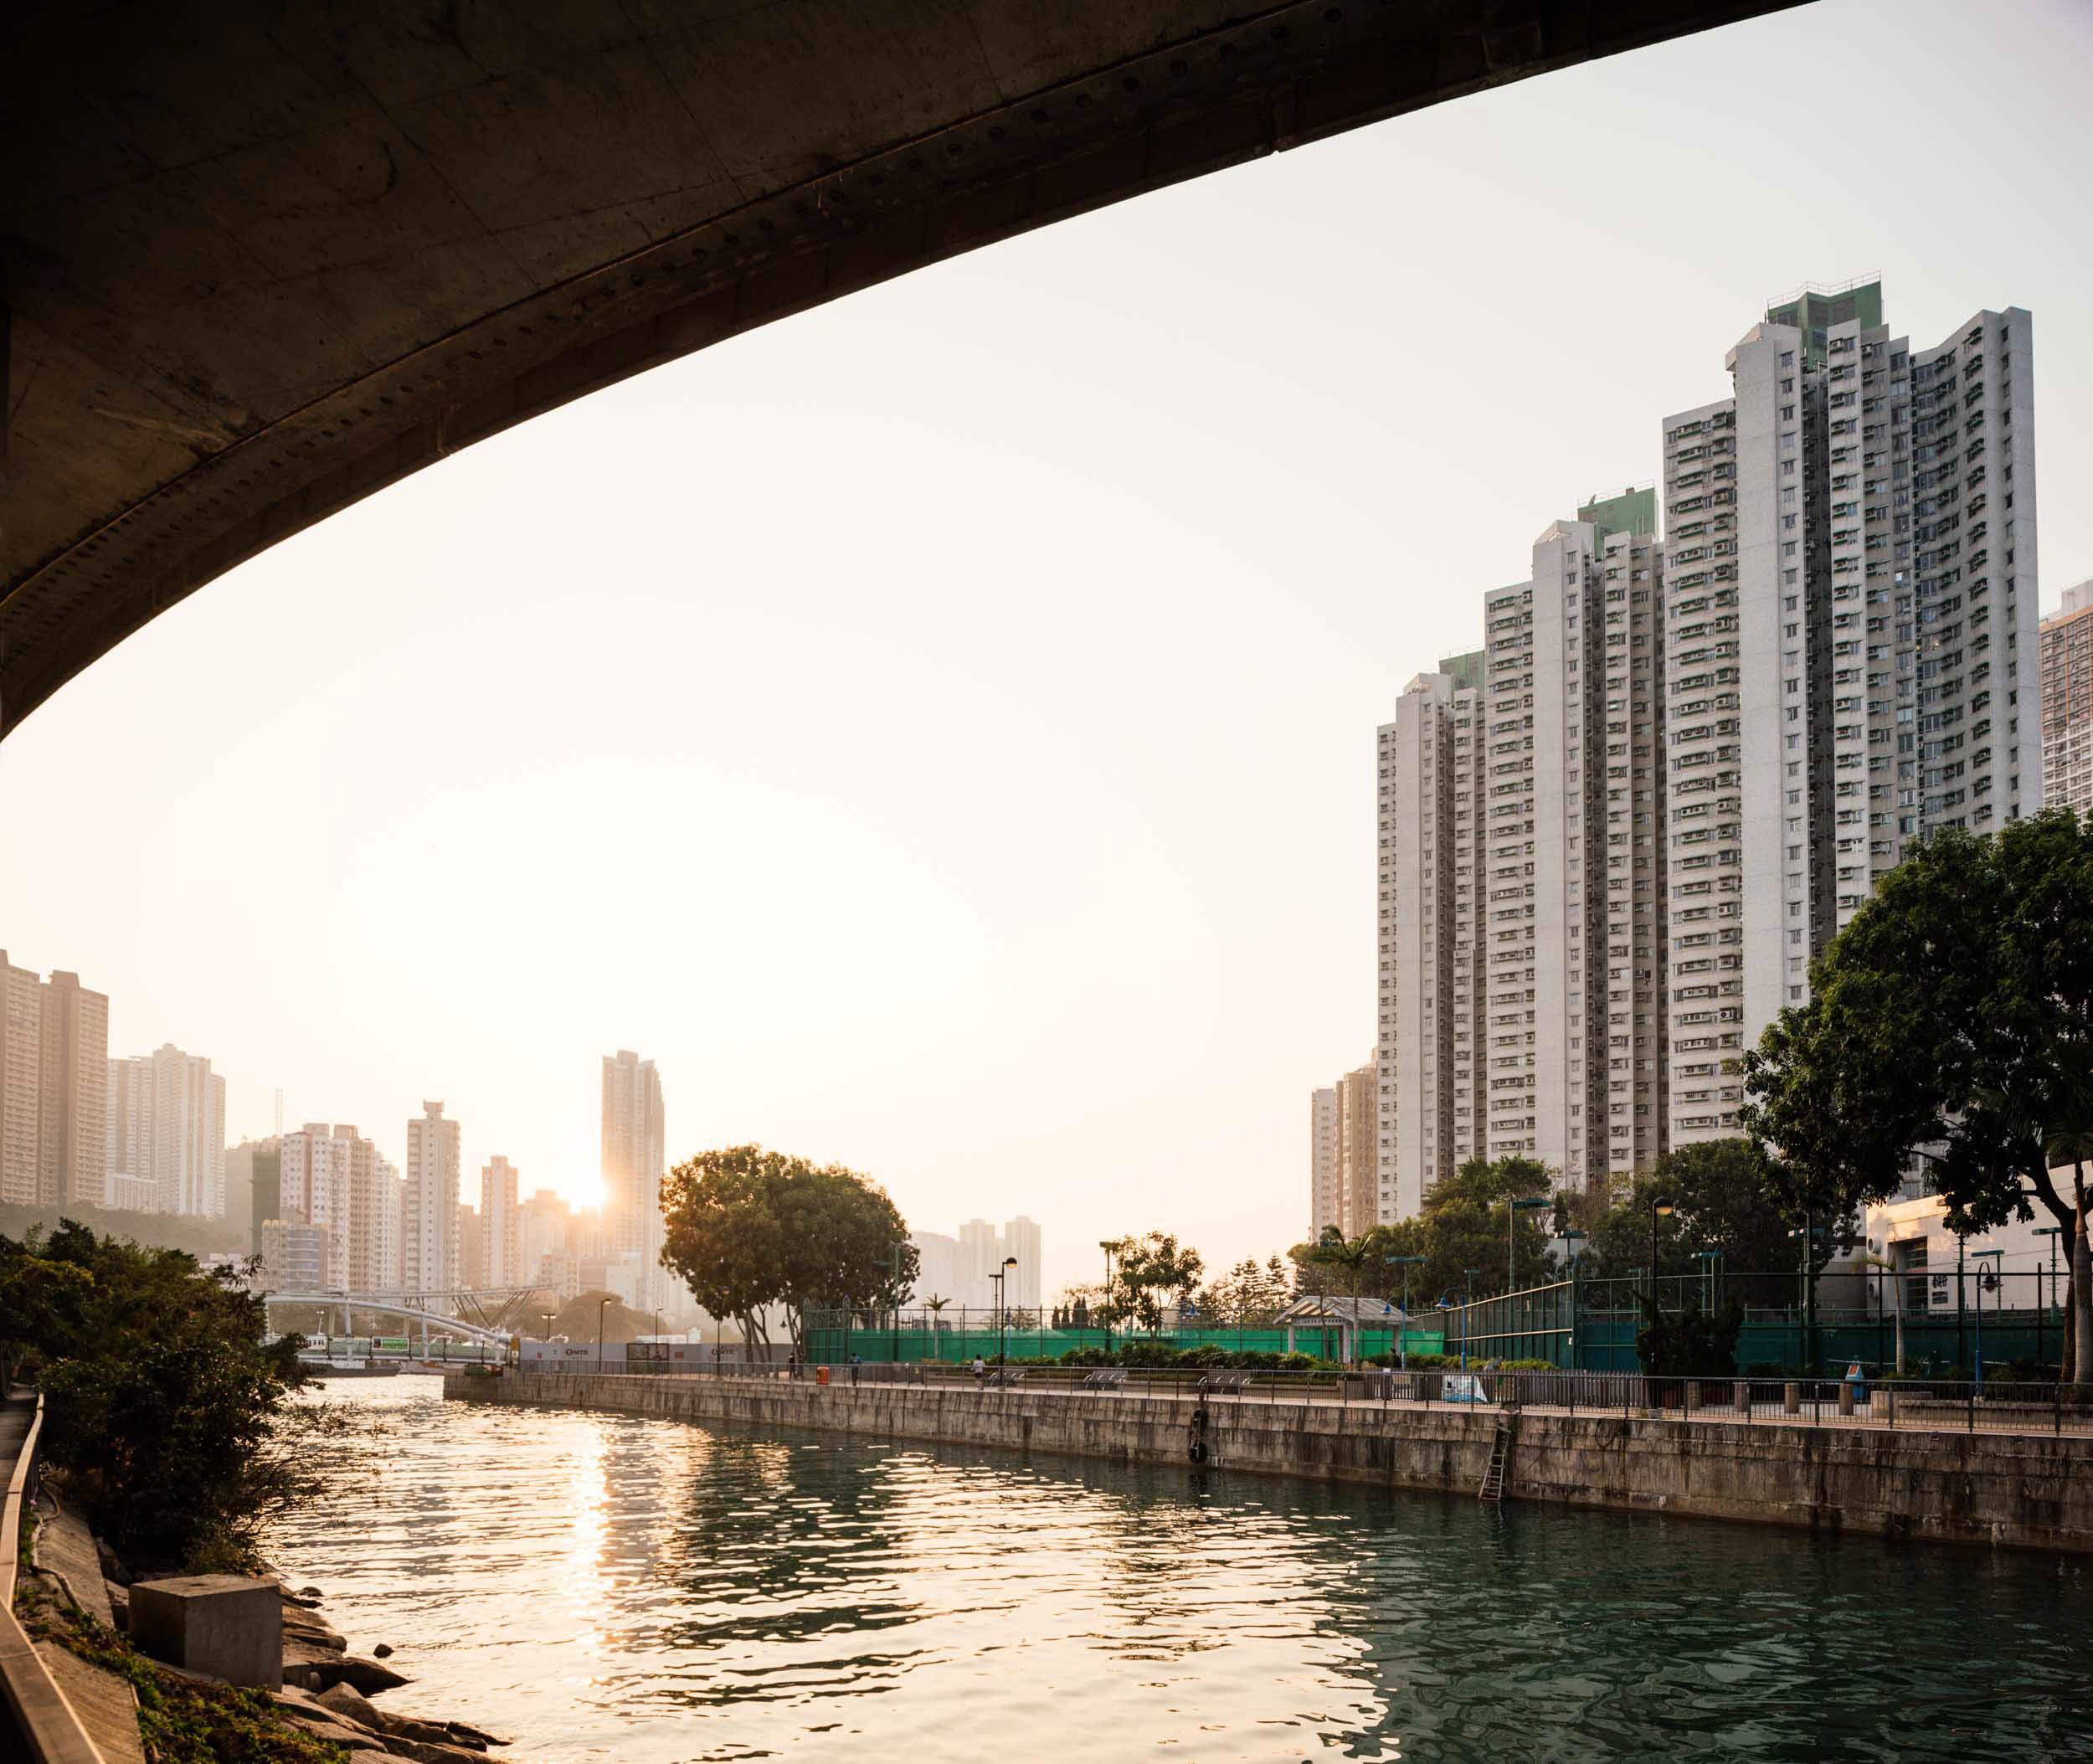 aberdeen-harbour-sunset-architecture-river-hong-kong-china